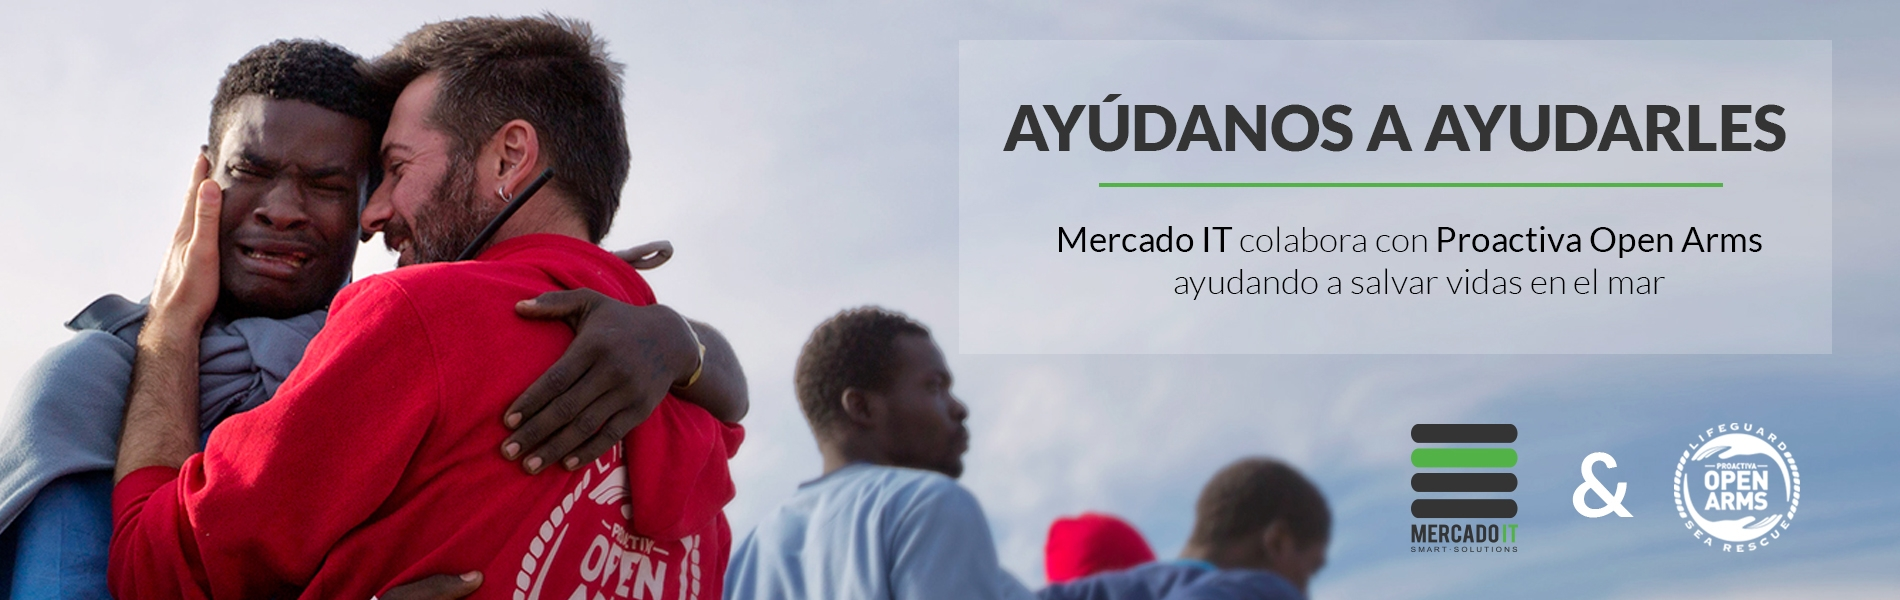 Mercado IT y Proactiva Open Arms